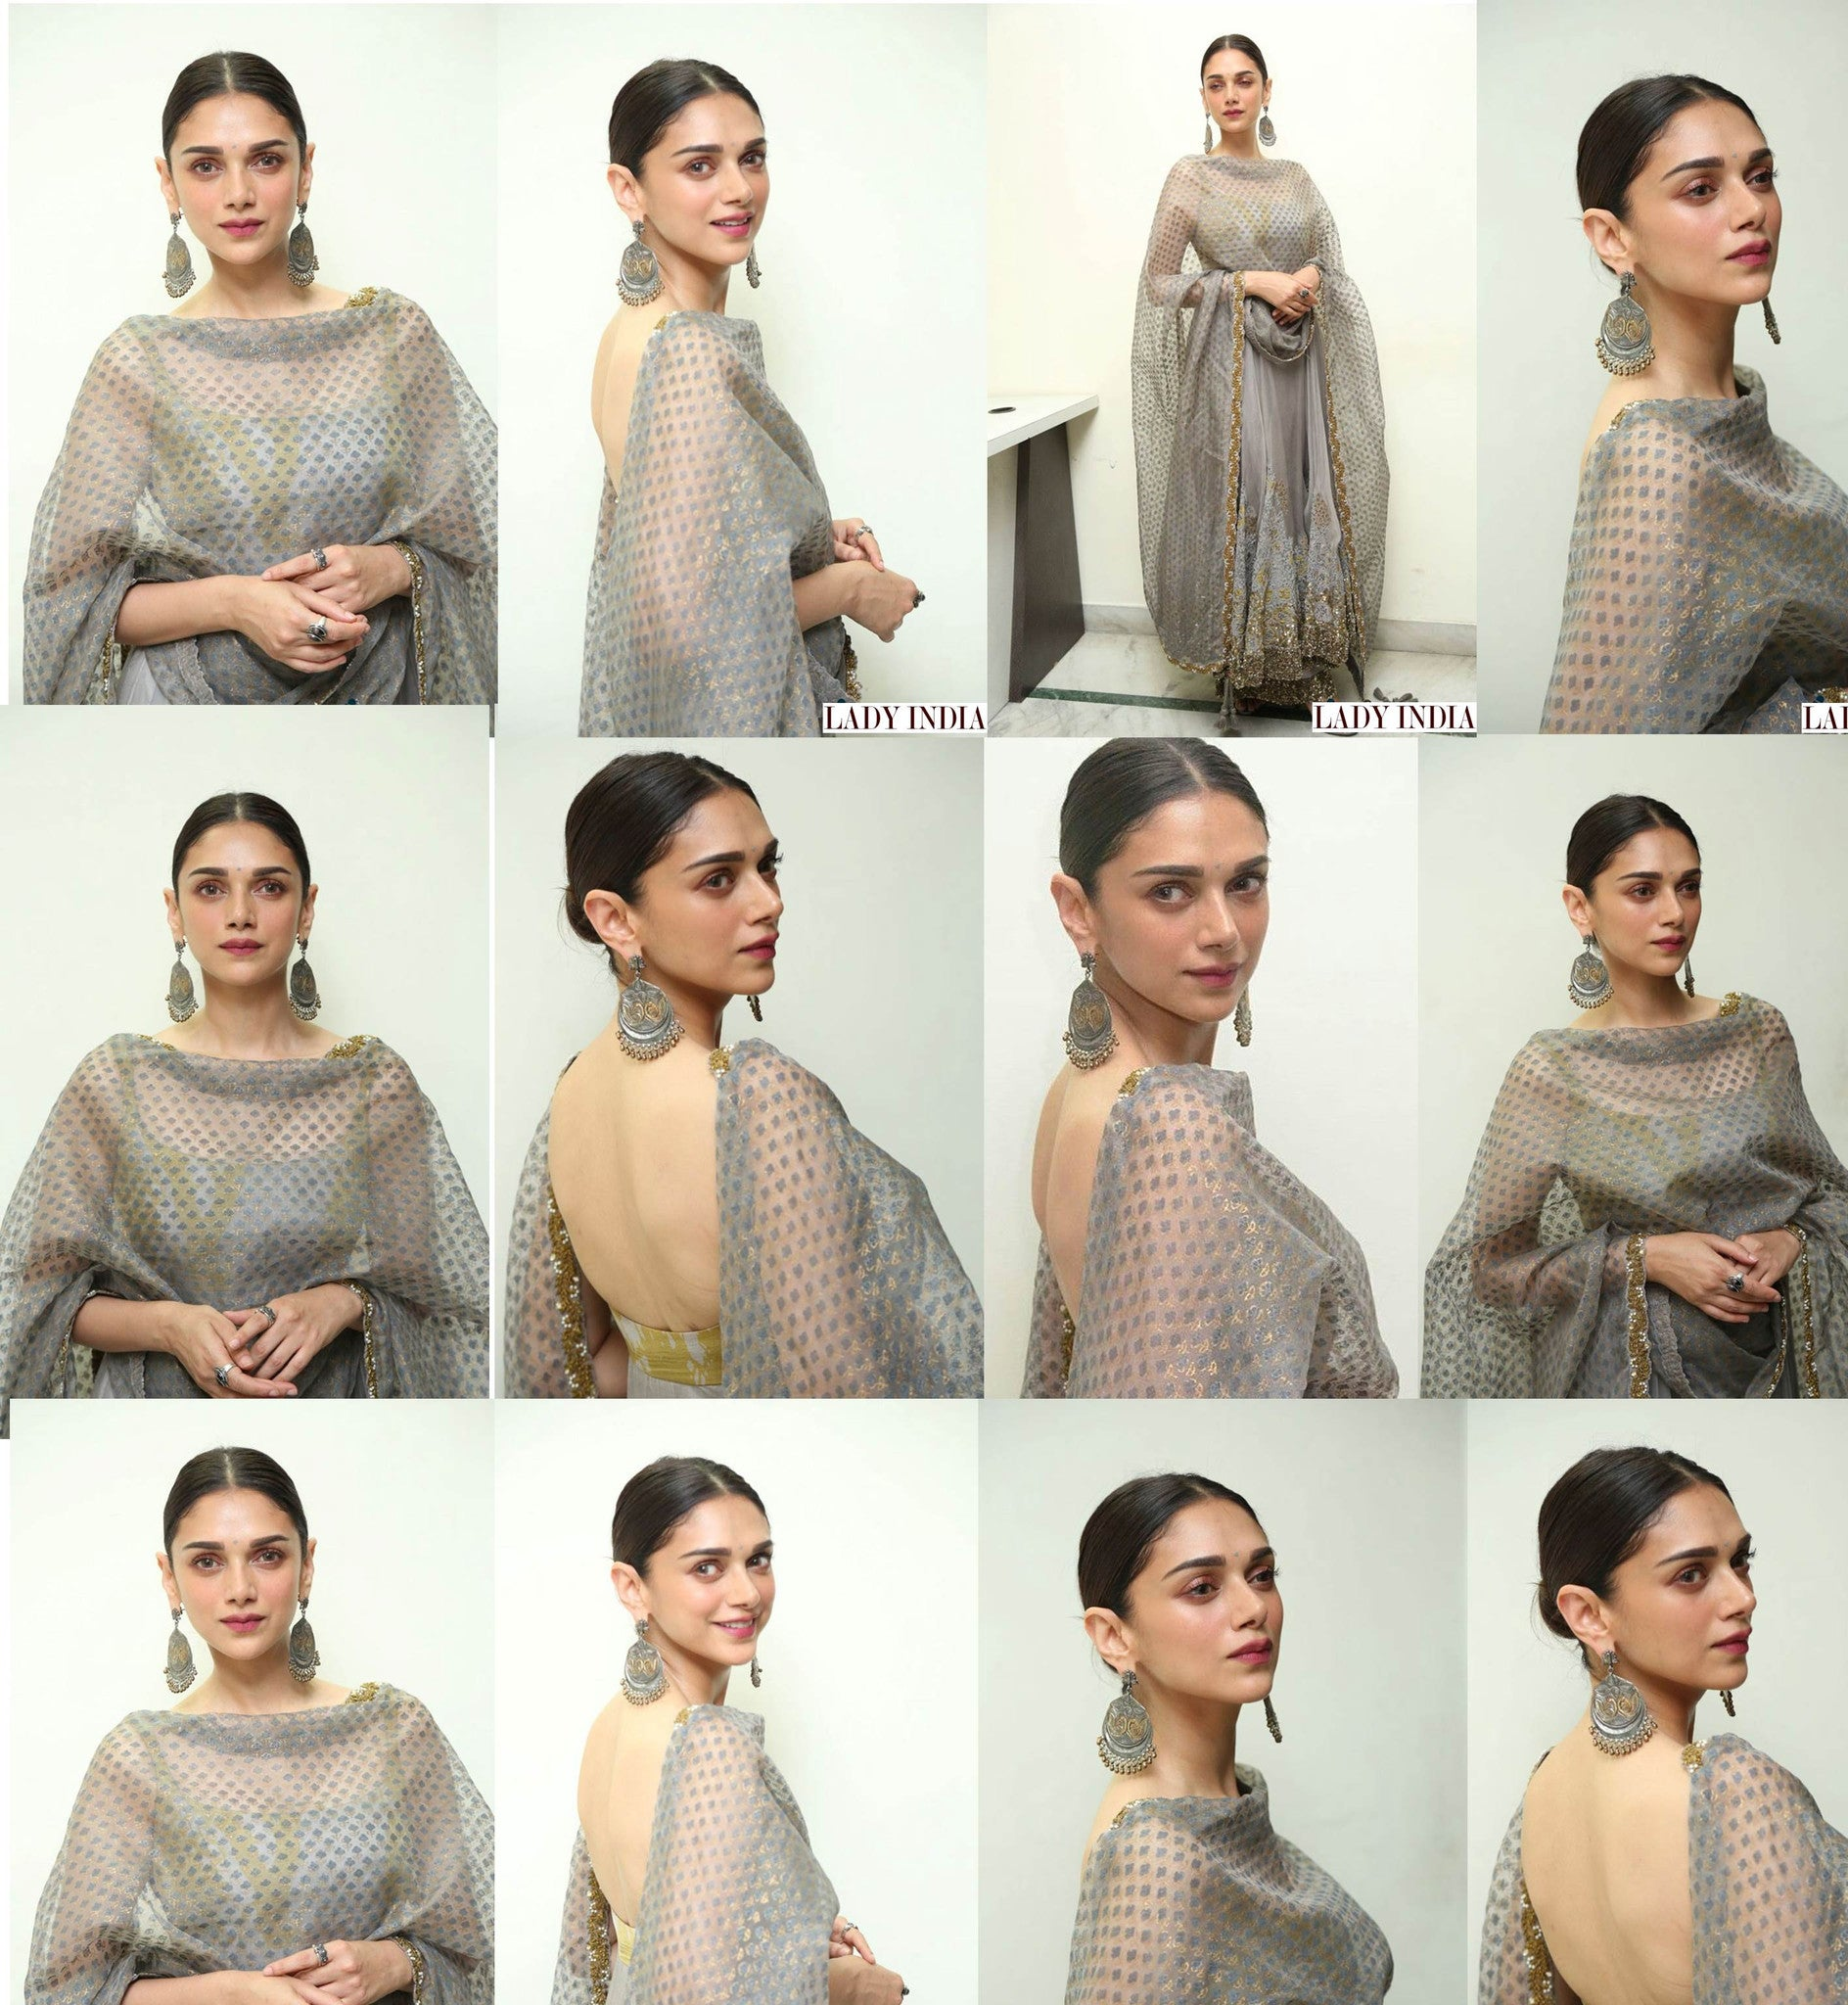 Aditi Rao Hydari in Nikita Mhaisalkar's Designer Indian Ethnic Wear during promotions of her upcoming film, 'Kaatru Veliyidai